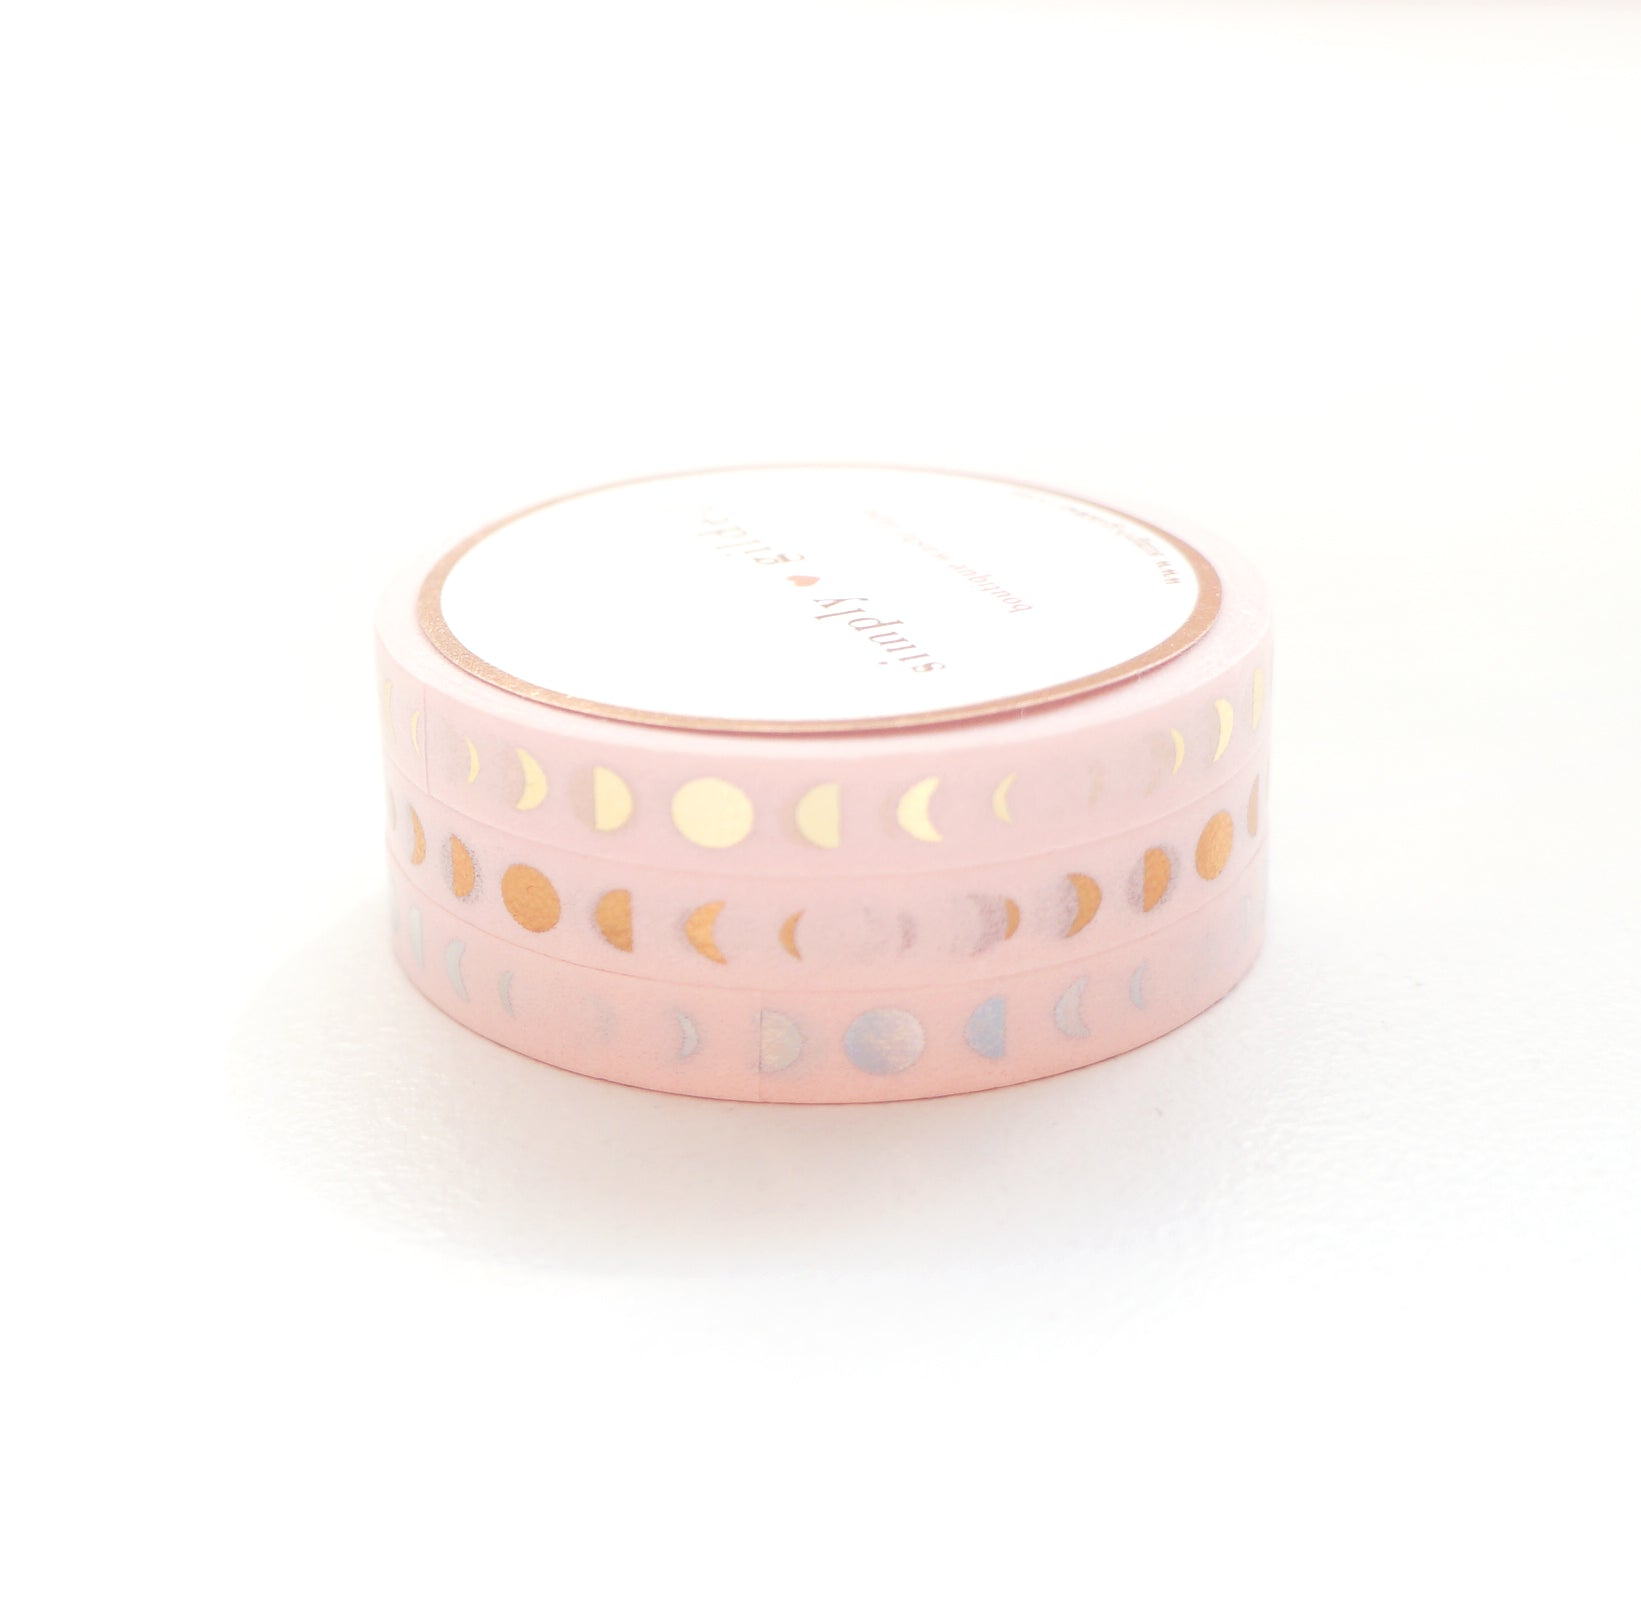 PERFORATED 6mm set of 3 - Moon Phase CLASSIC PINK + lt. gold/rose gold/silver holo